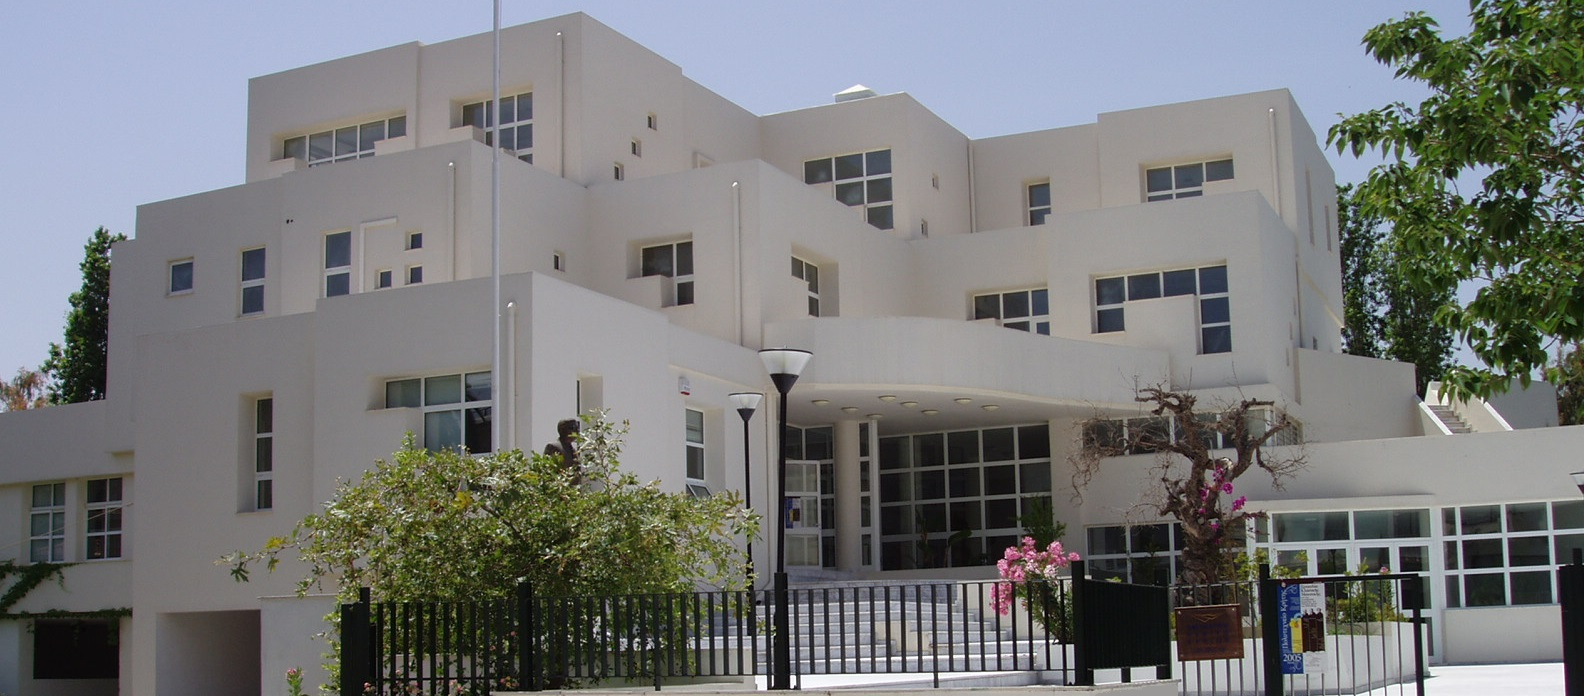 Cultural Center of Chania